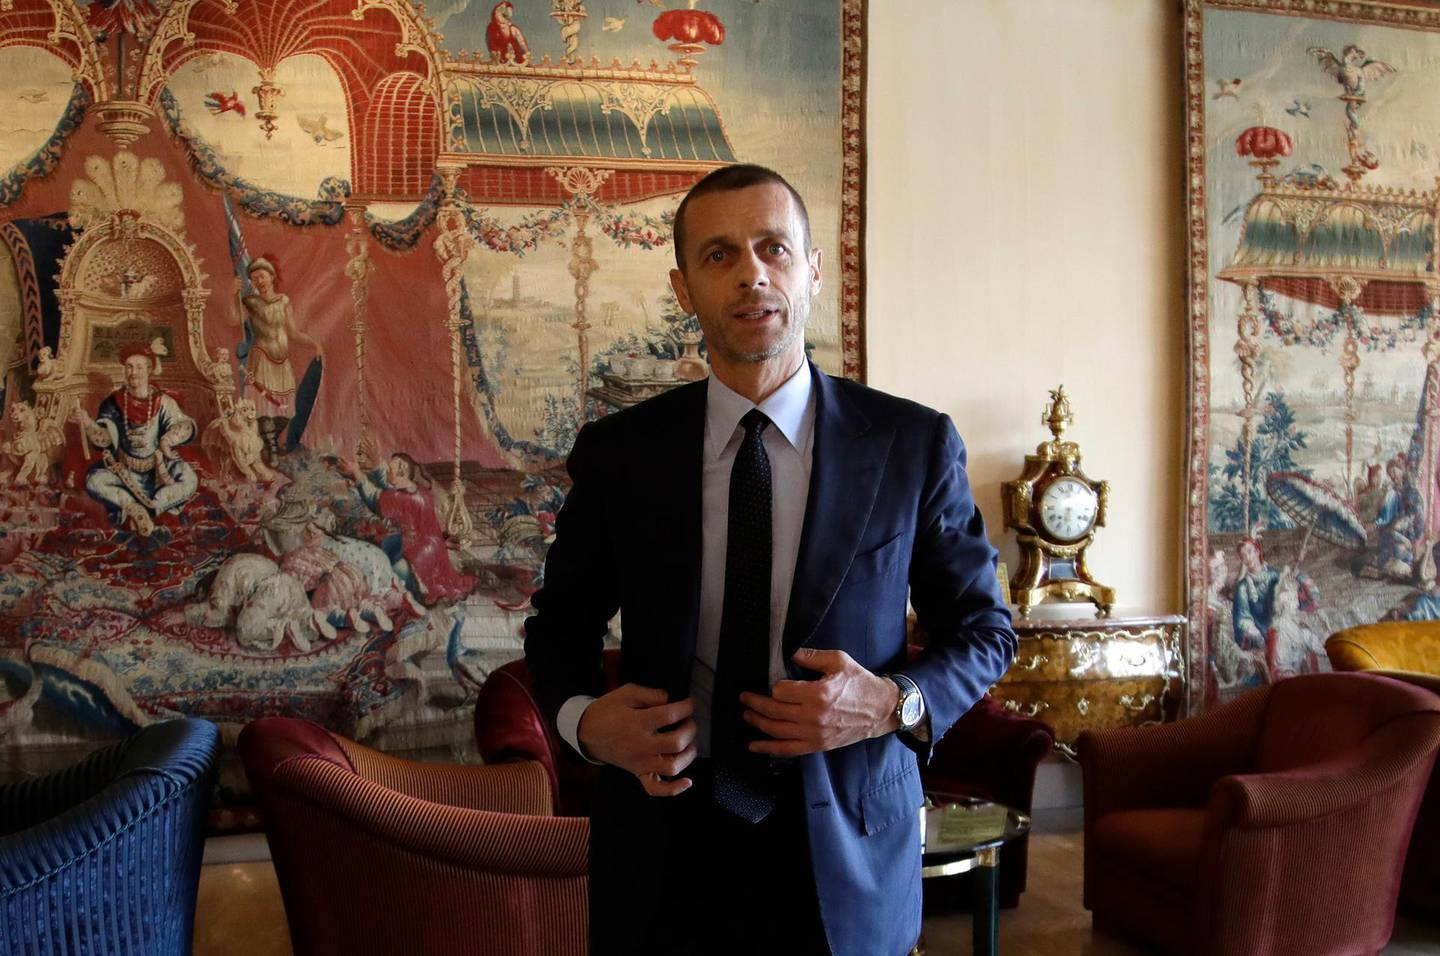 UEFA President Aleksander Ceferin talks during an interview at the end of European Club Association's (ECA) 20th General Assembly, in the organization's 10-year anniversary in Rome, Tuesday, March 27, 2018. (AP Photo/Alessandra Tarantino)